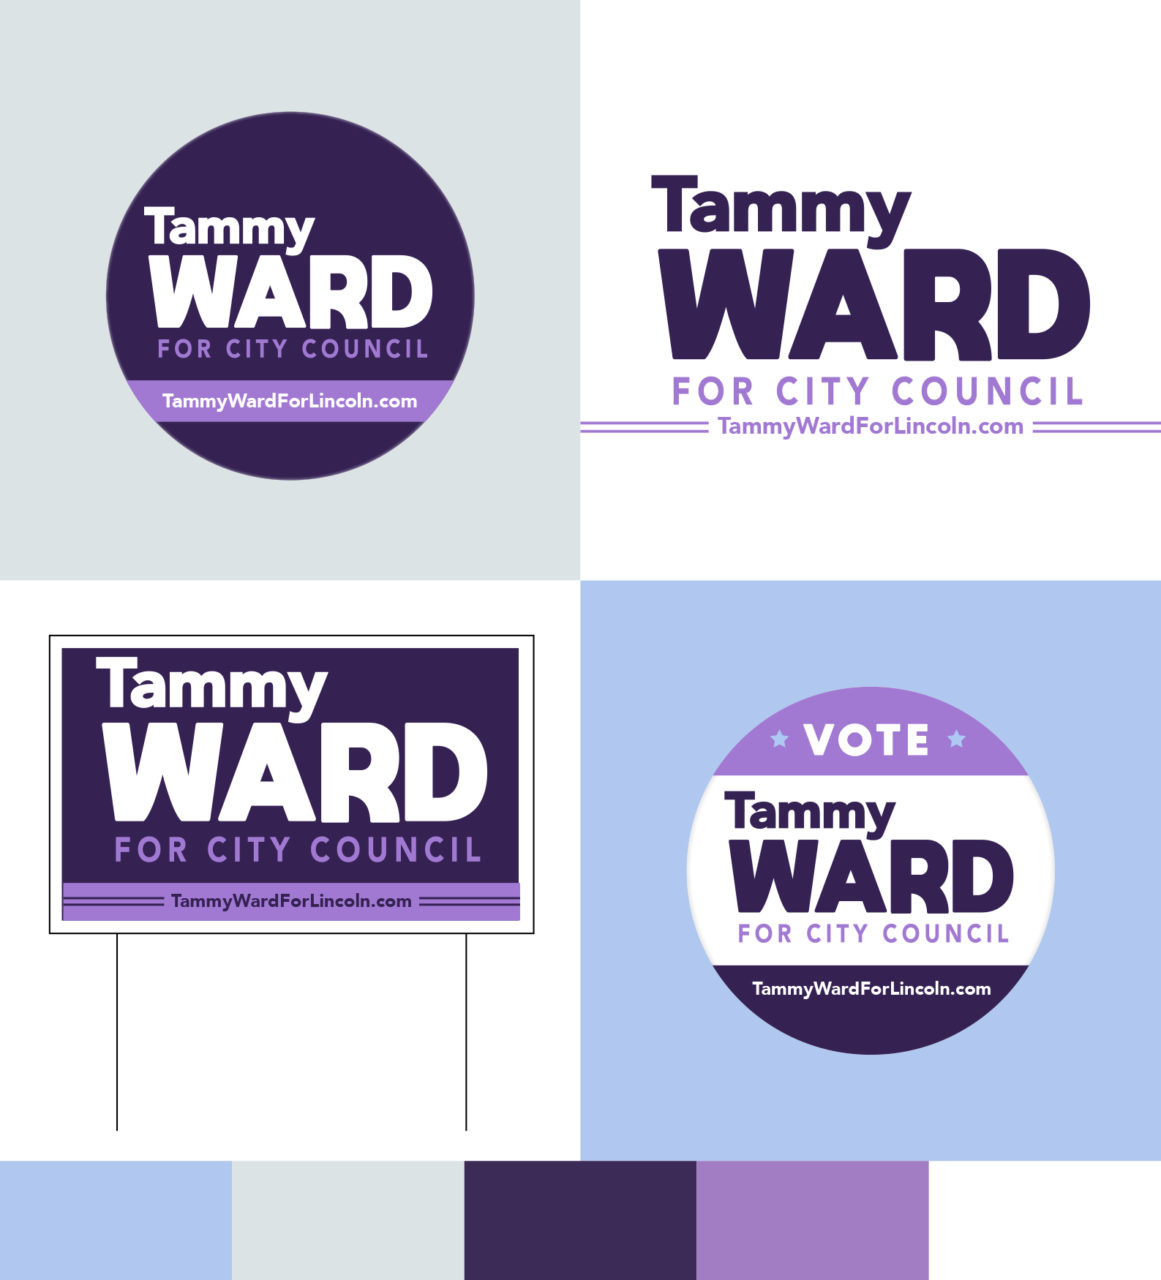 Tammy Ward for City Council Branding